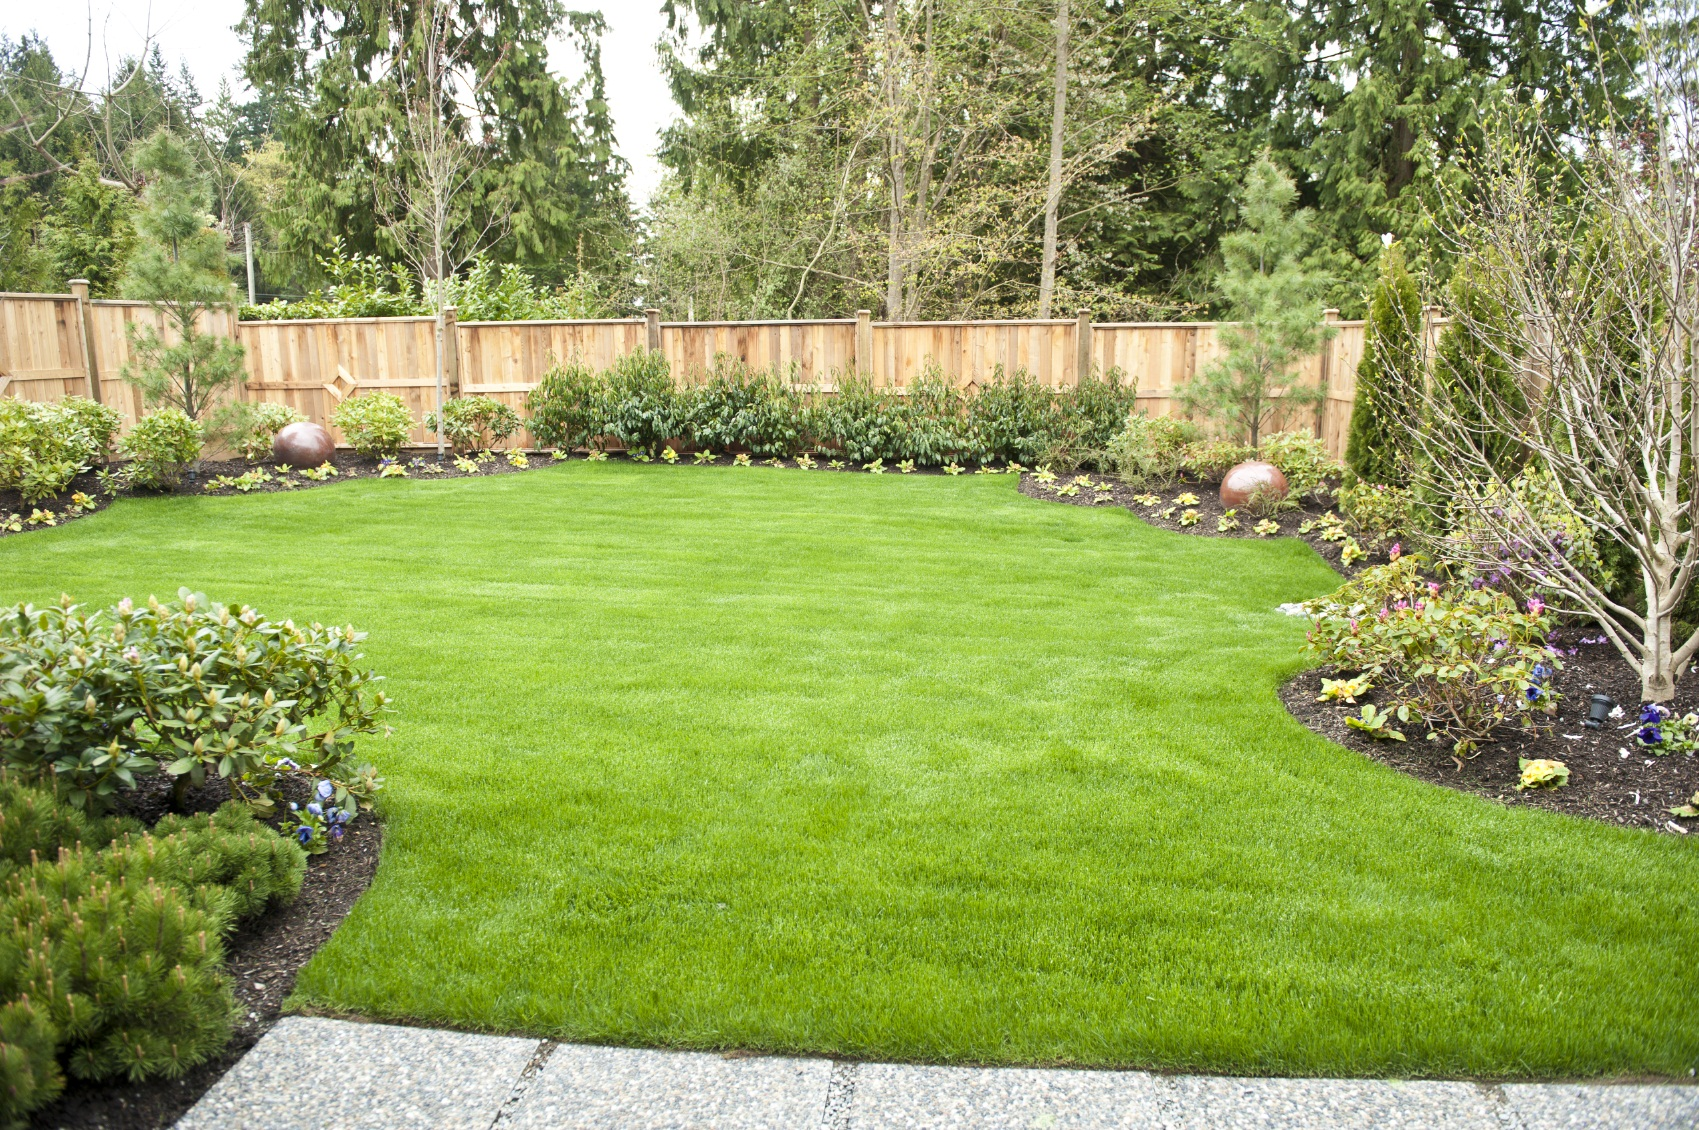 Garden in my backyard wordreference forums for Lawn and garden landscaping ideas